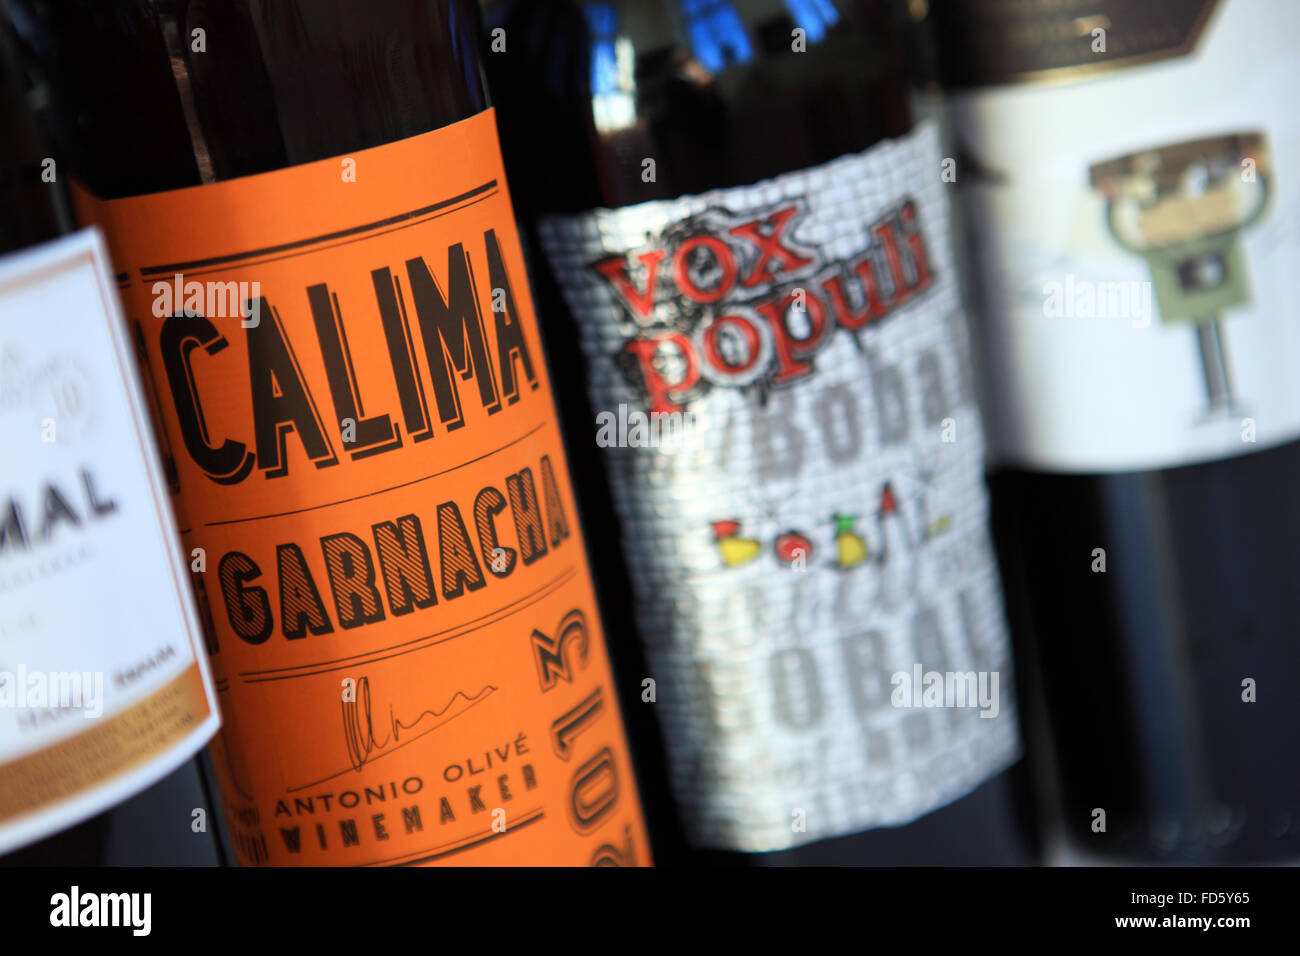 Interesting Bottles Bottles Of Red Wine With Interesting Labels Stock Photo 94173469